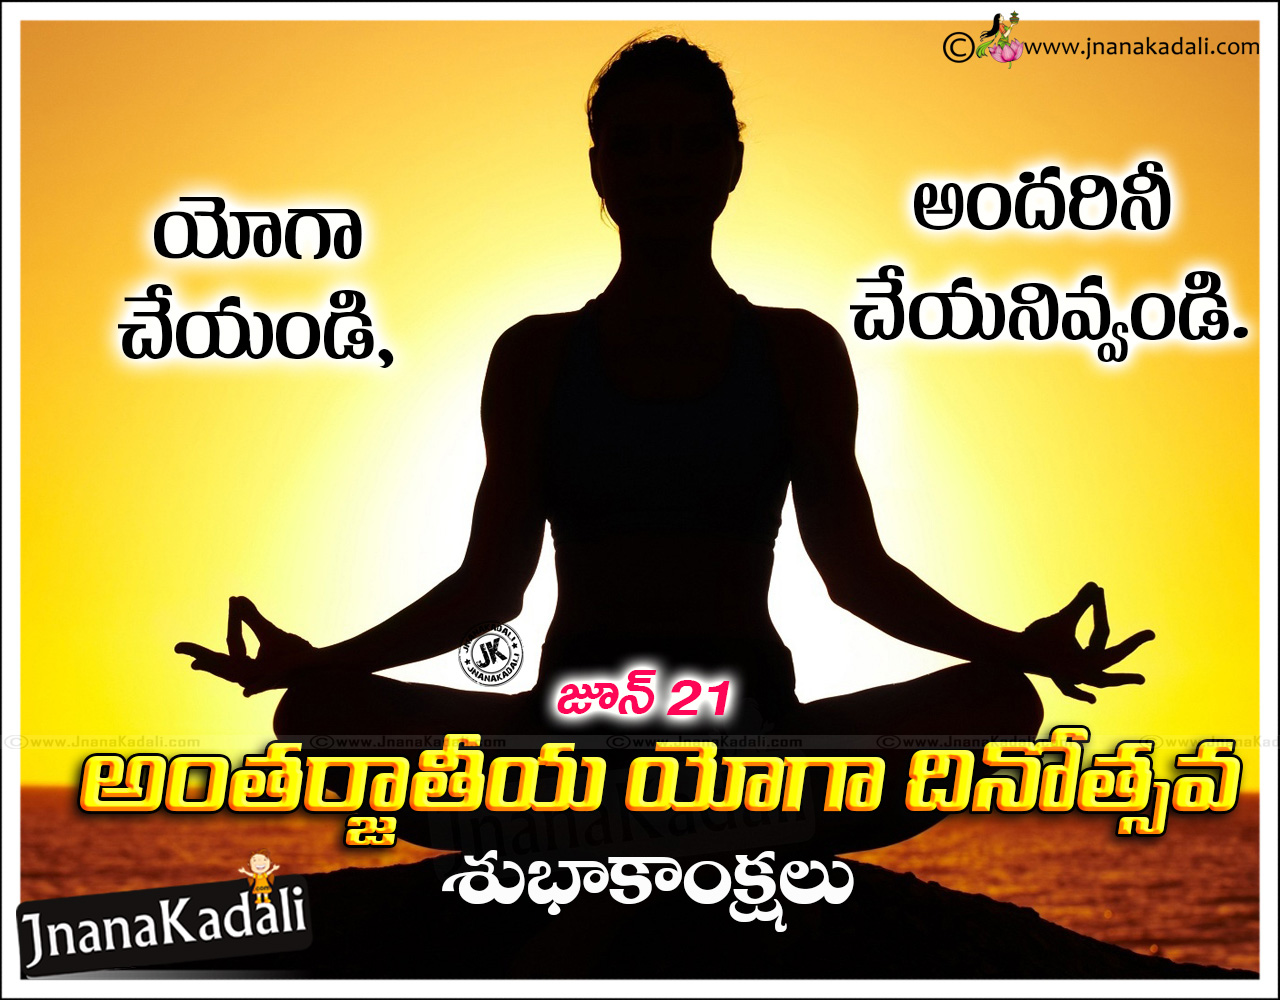 International Yoga Day Posters And Wishes Quotes In Telugu Jnana